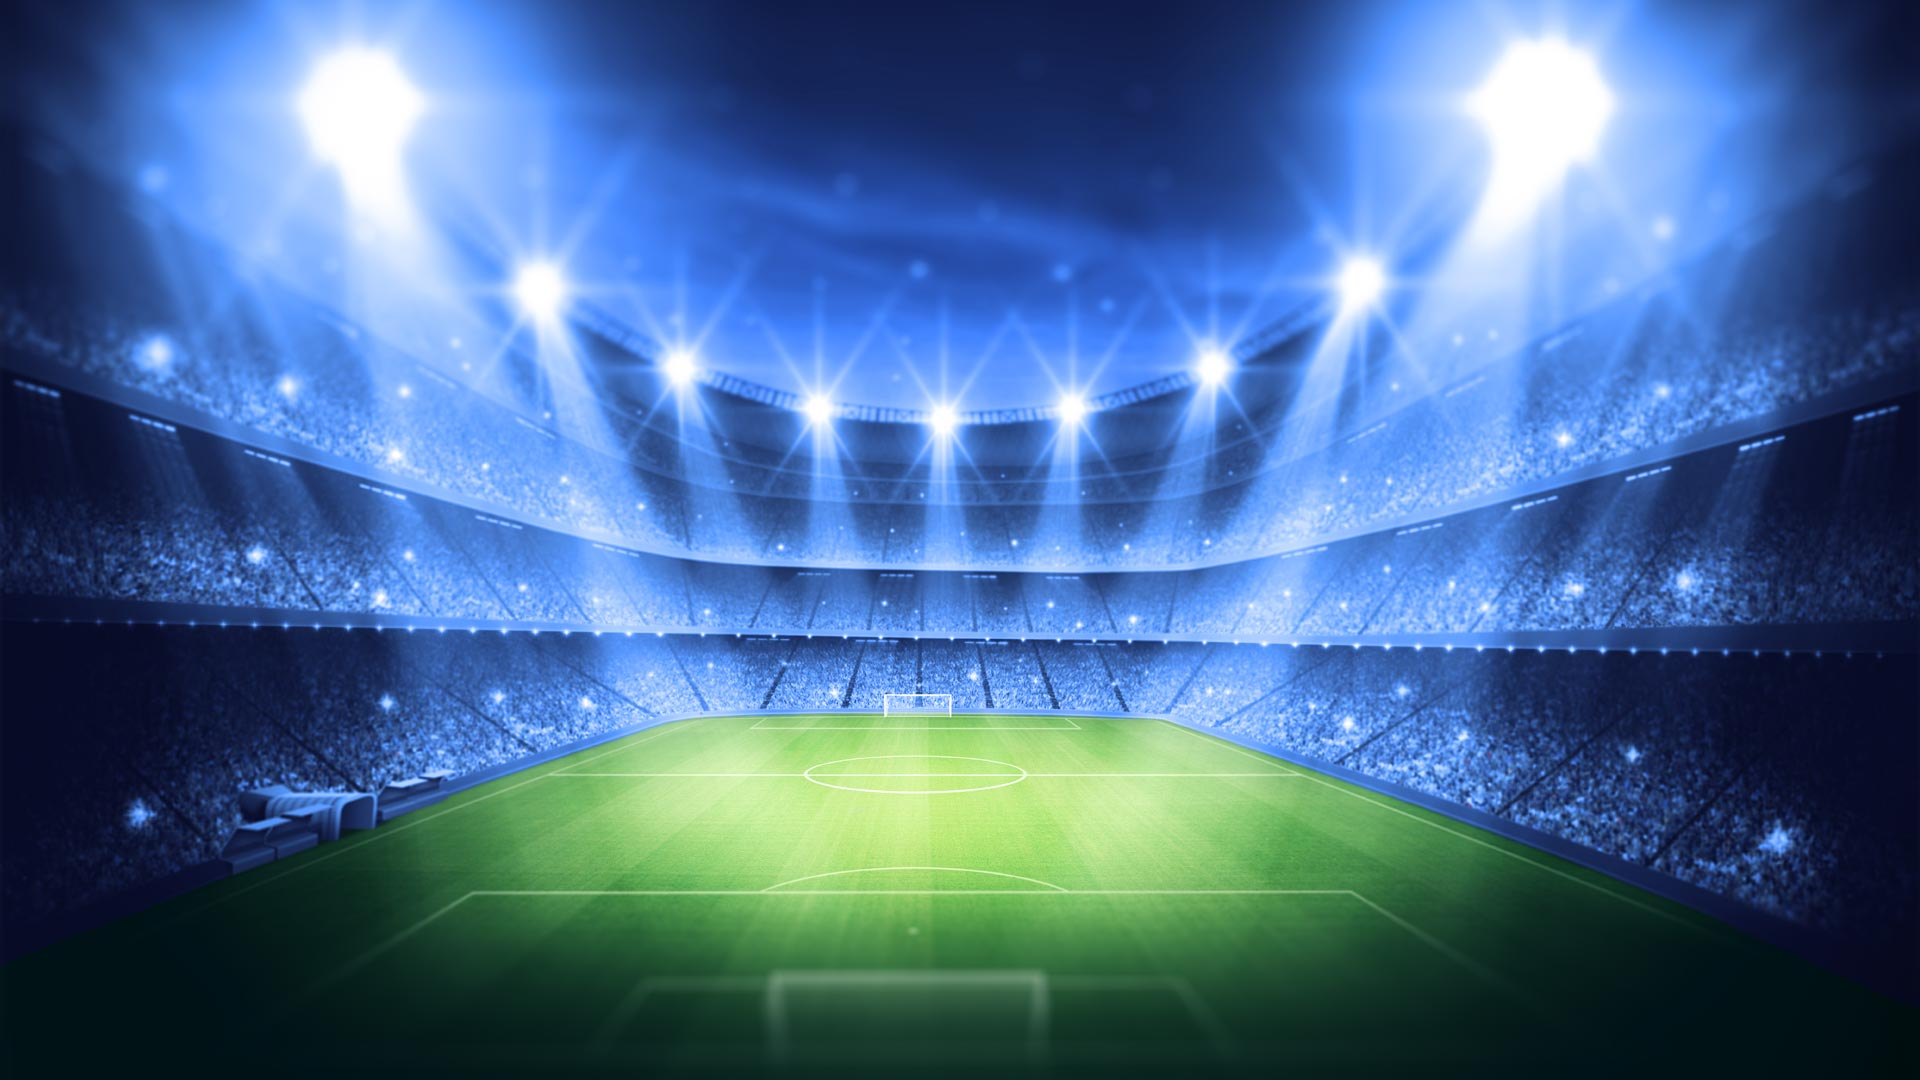 CHAMPIONS LEAGUE Football Fixtures 2014/2015 - TV Guide UK TV Listings